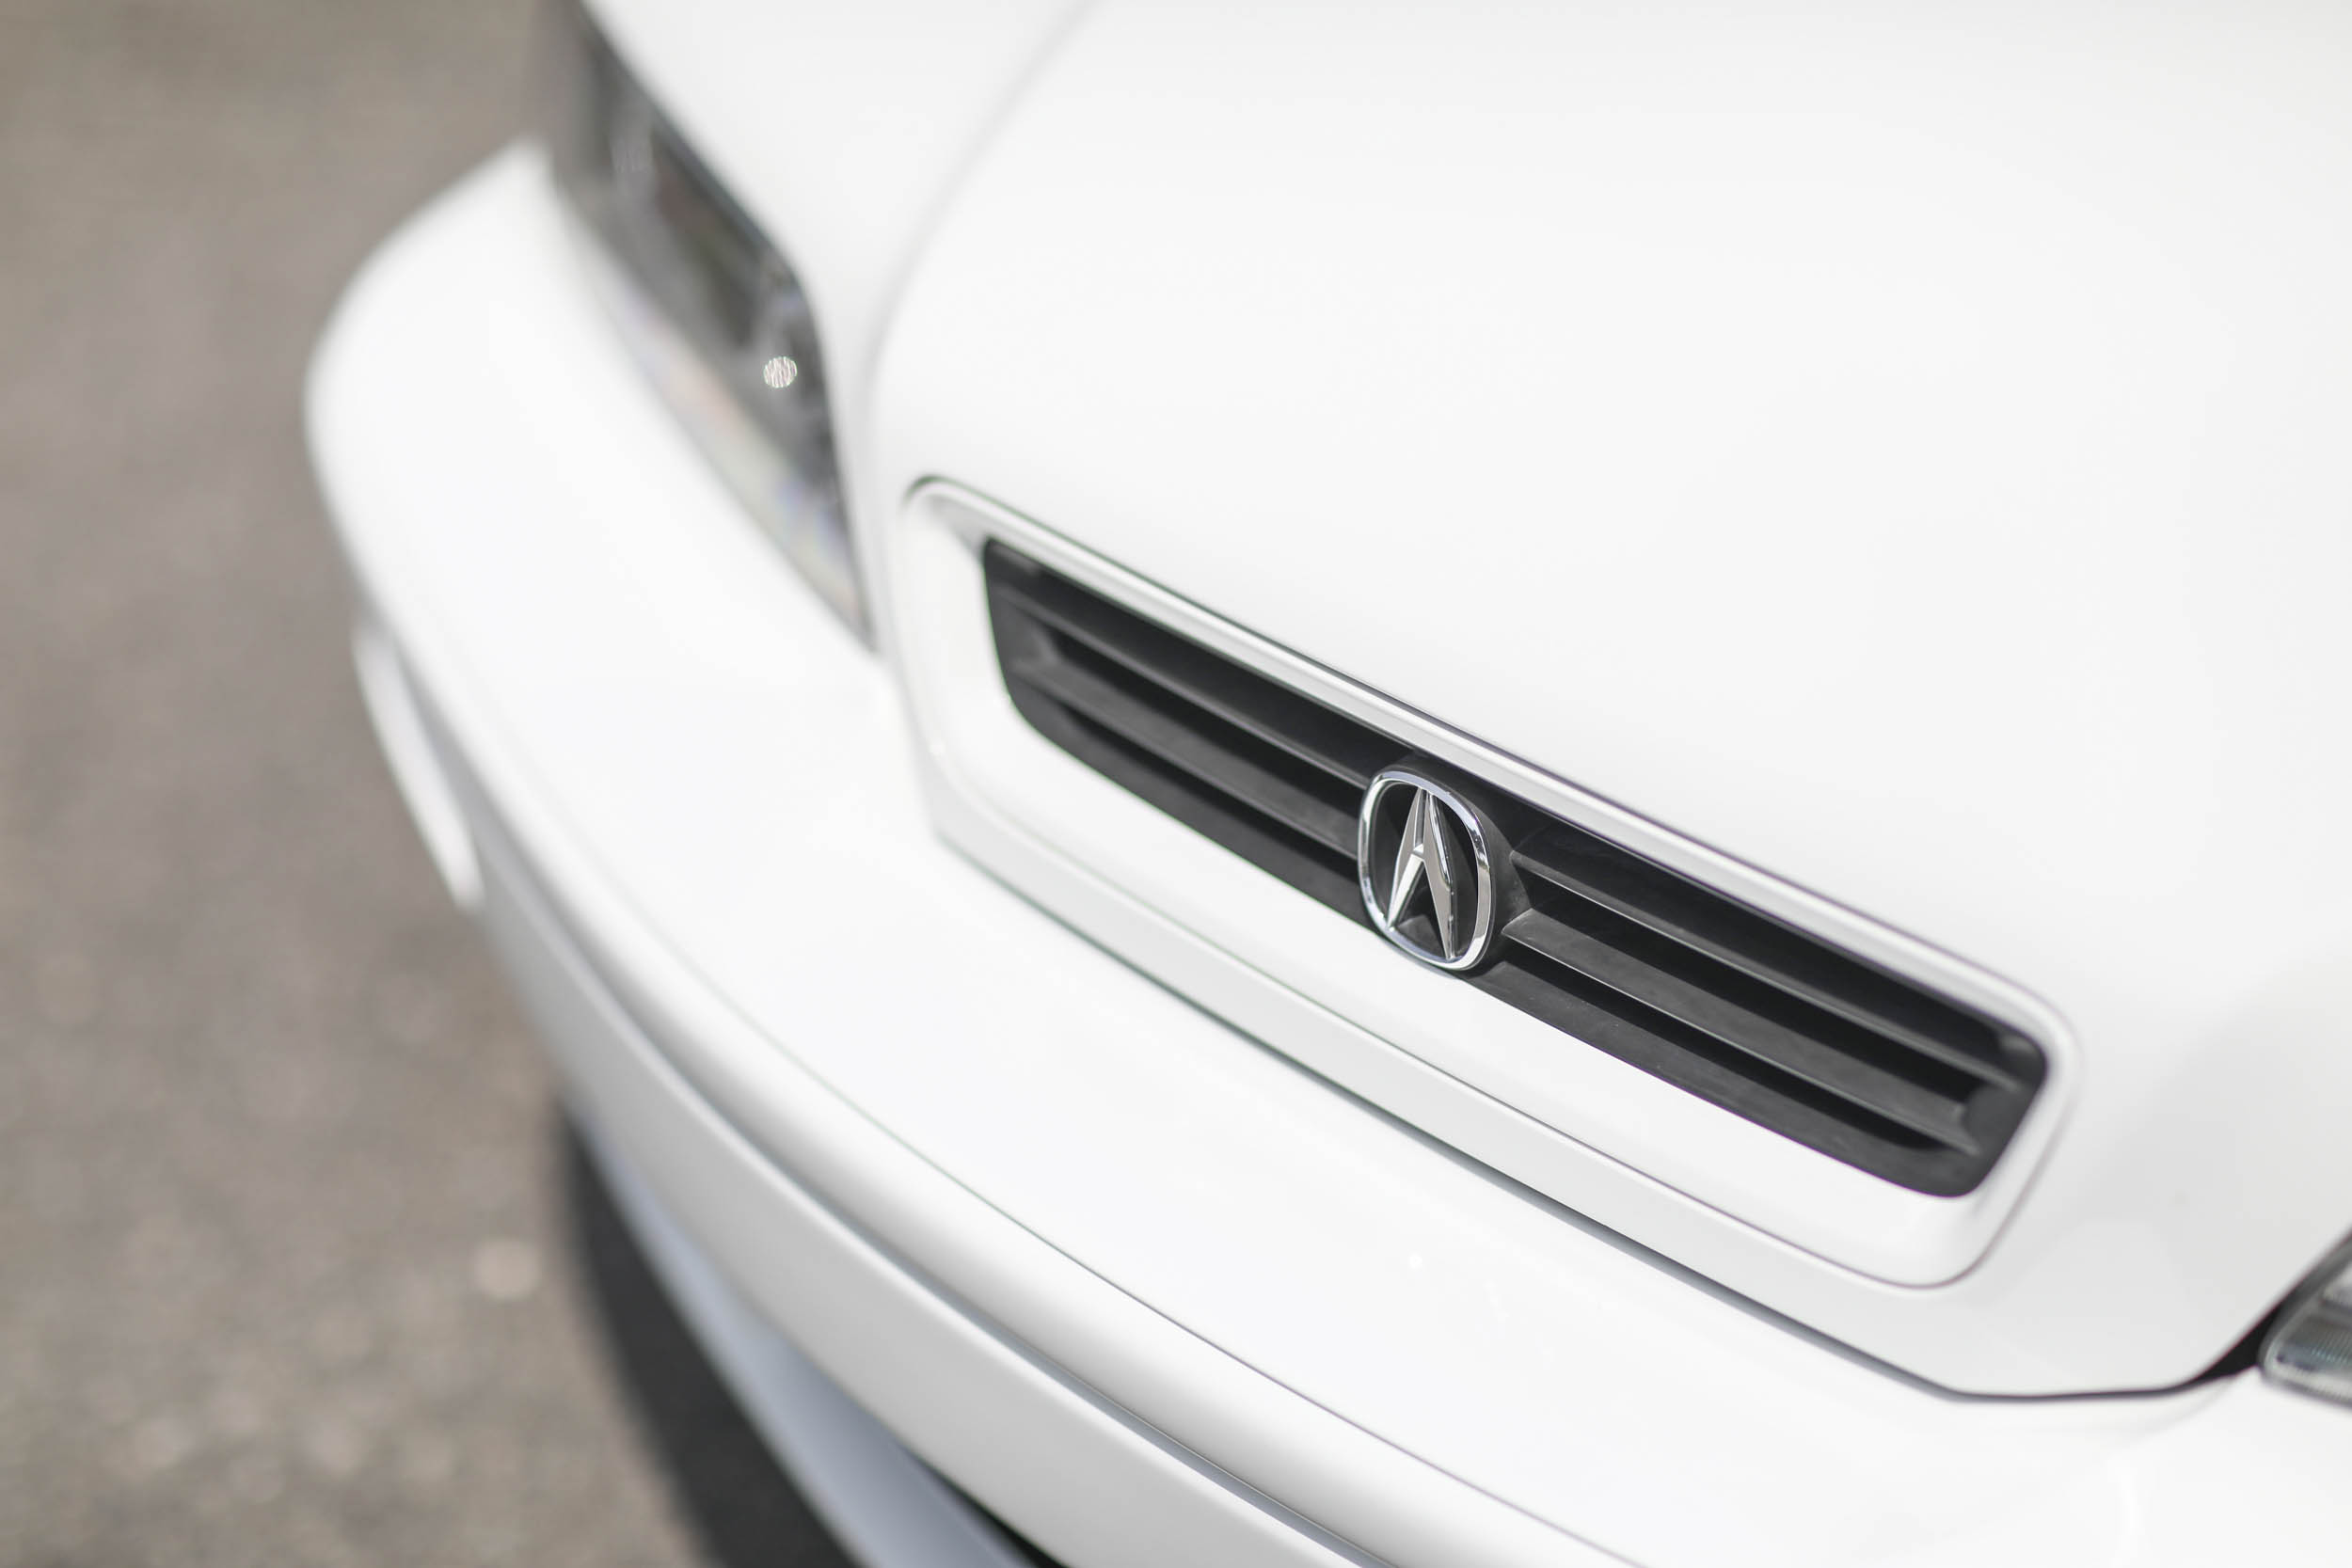 1994 Acura Legend Coupe LS grille